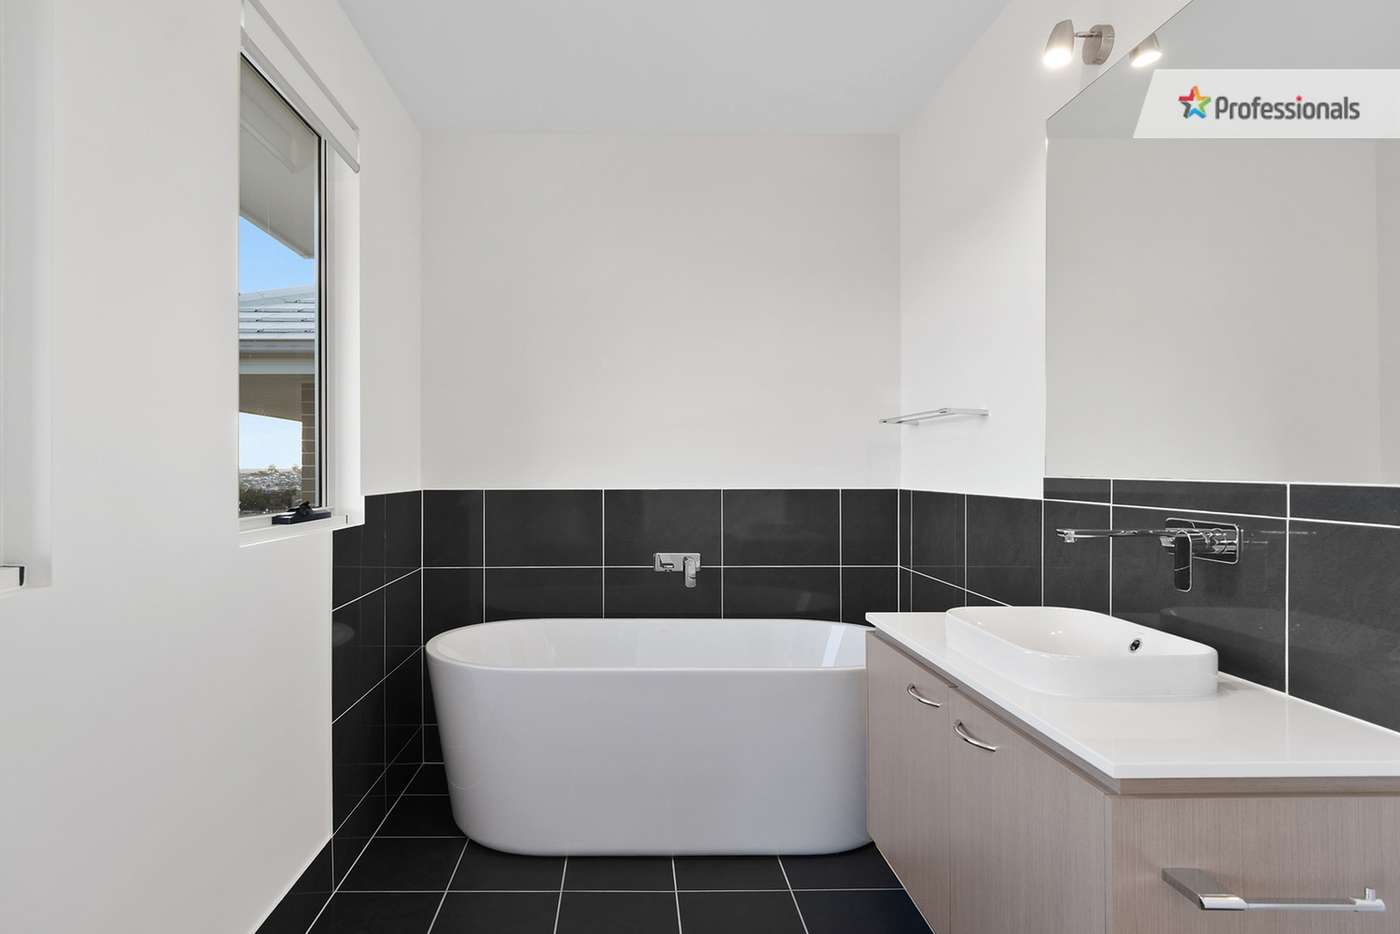 Sixth view of Homely house listing, 9 Panton Street, Rouse Hill NSW 2155